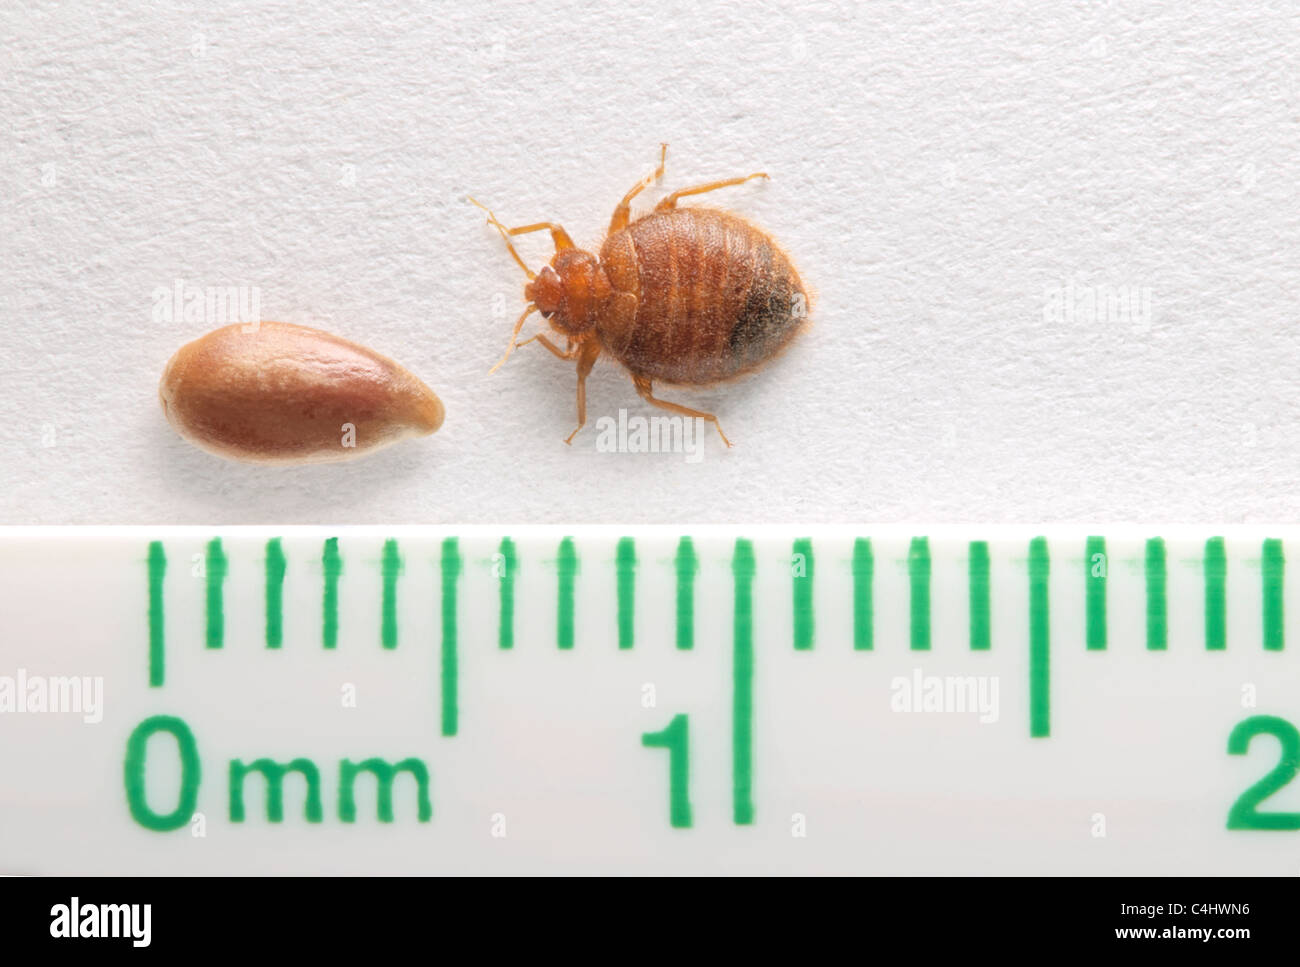 common adult bed bug- bedbug (cimex lectularius) compared to a